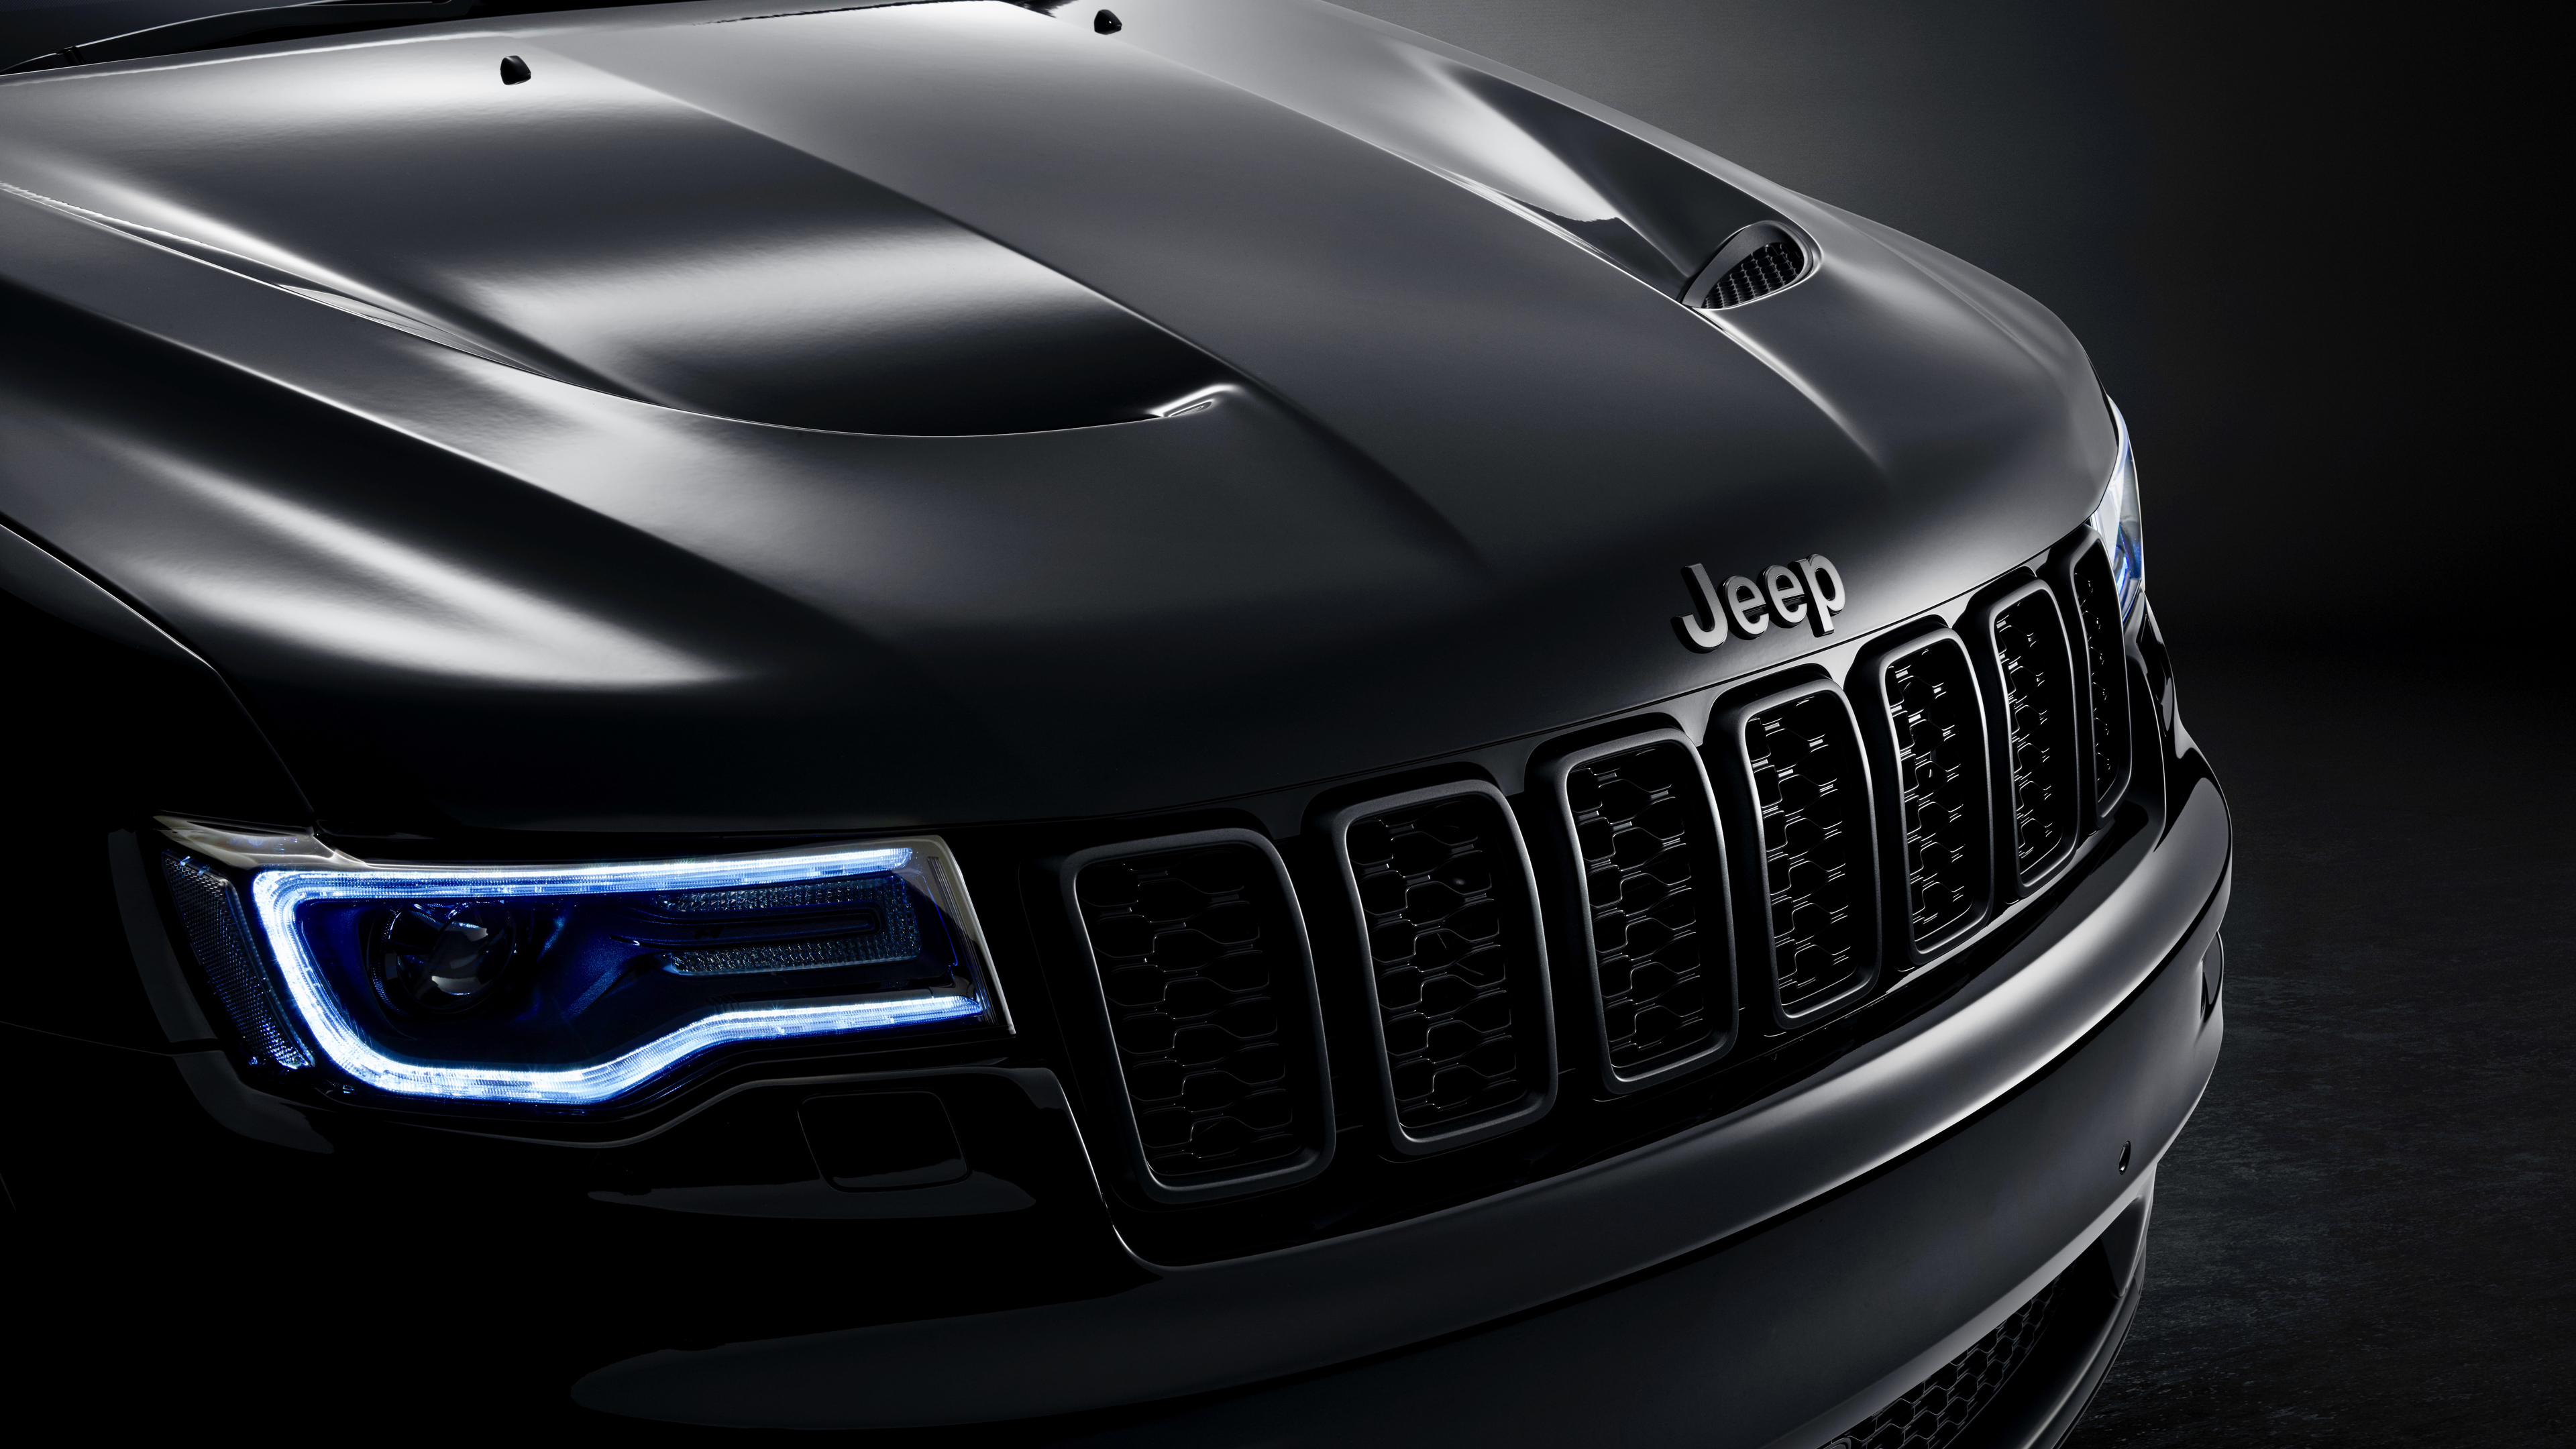 jeep grand cherokee s limited 4k 1556185165 - Jeep Grand Cherokee S Limited 4k - jeep wallpapers, jeep grand cherokee wallpapers, hd-wallpapers, cars wallpapers, 8k wallpapers, 5k wallpapers, 4k-wallpapers, 2019 cars wallpapers, 10k wallpapers